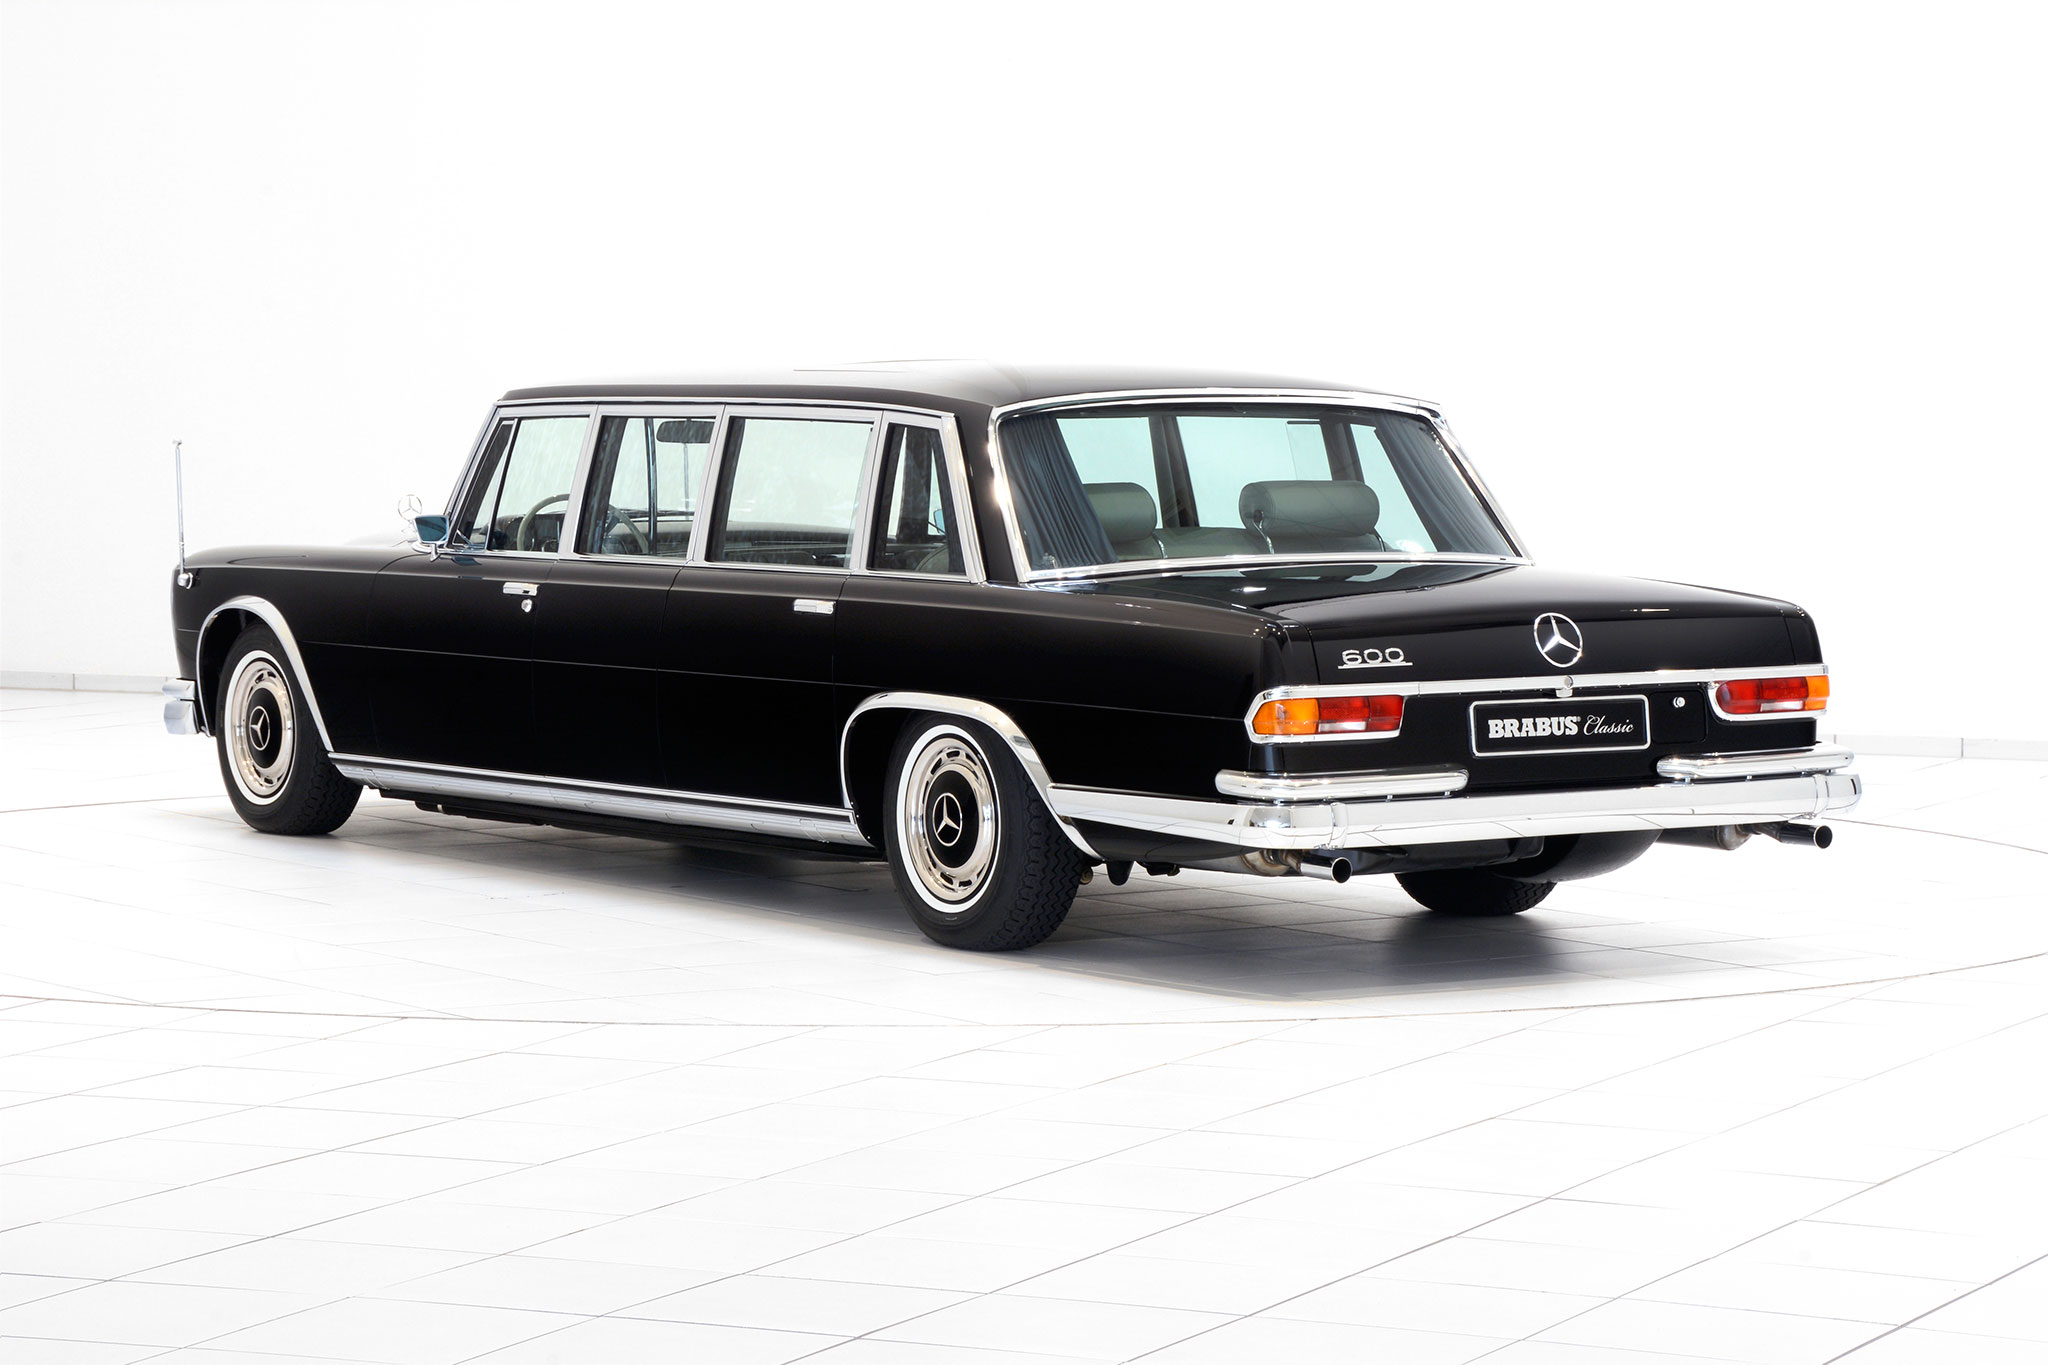 Brabus promotes classic services with restored mercedes for Mercedes benz classic cars